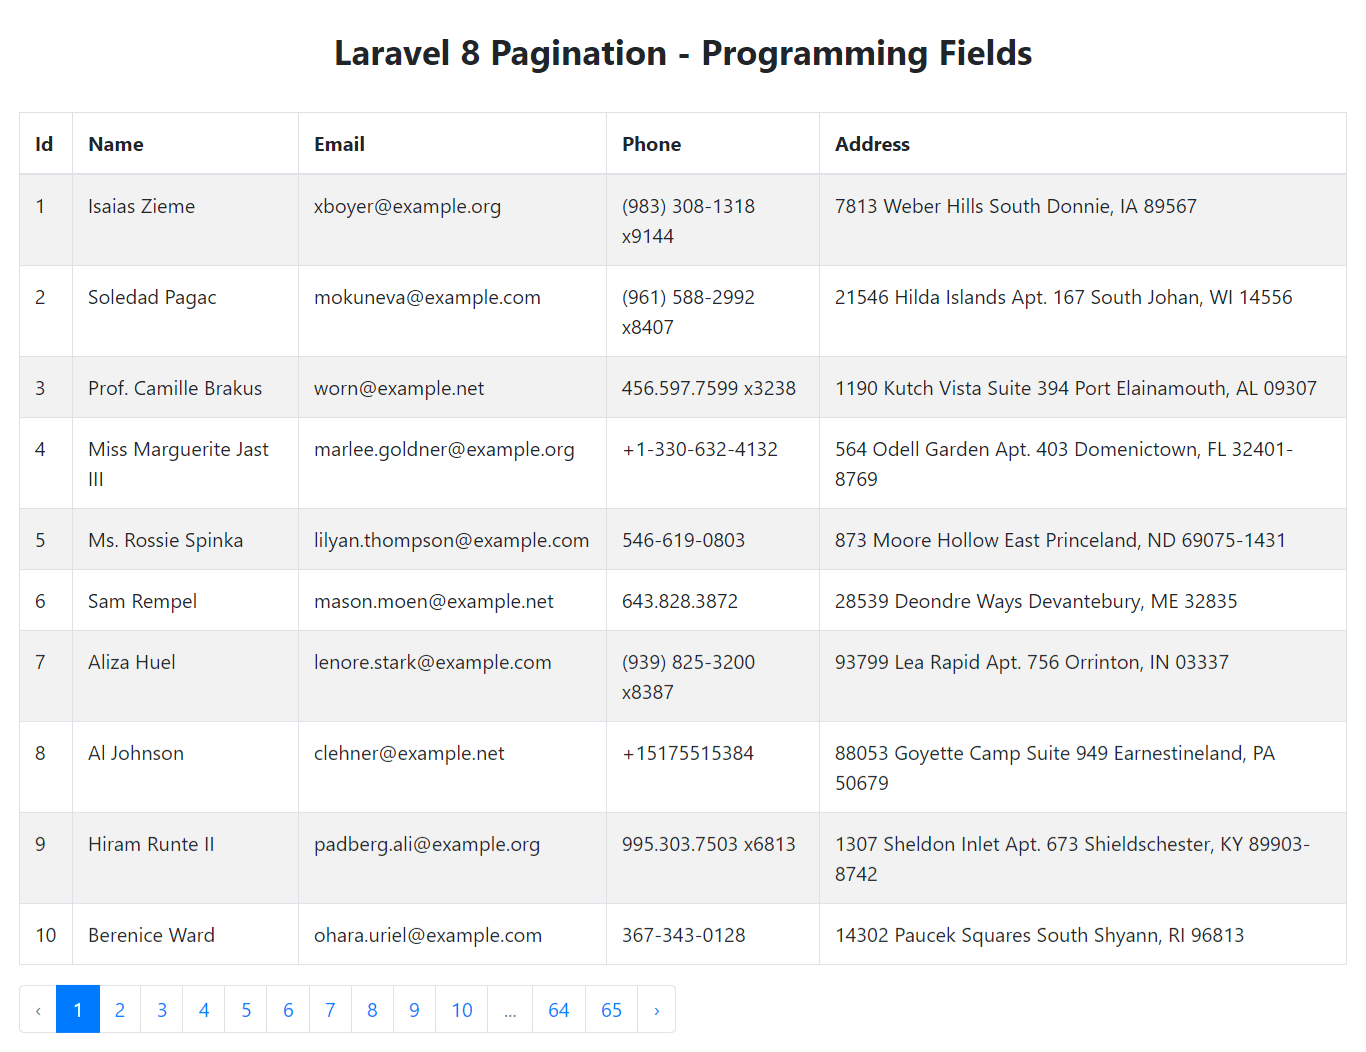 Laravel 8 Pagination Result